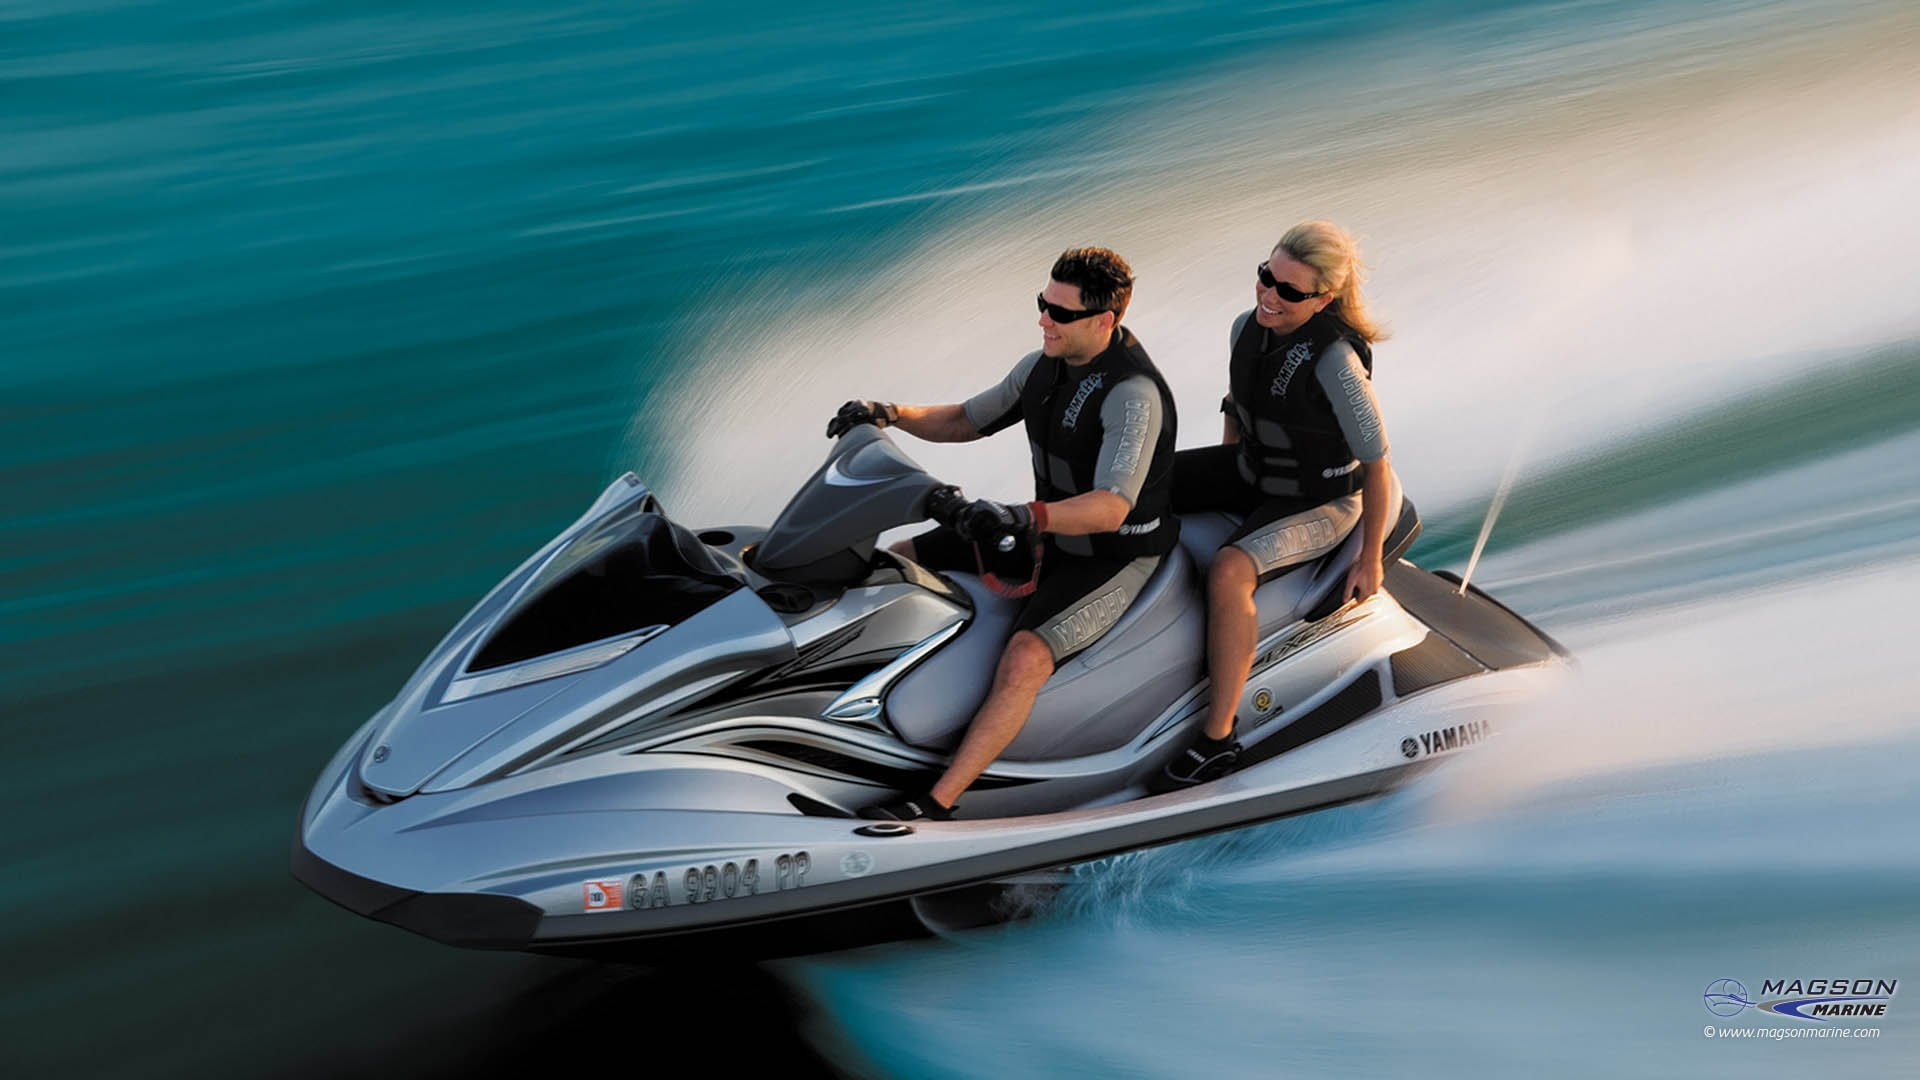 Wallpapers Of Beautiful Magson Marine Boats And Jet Skis